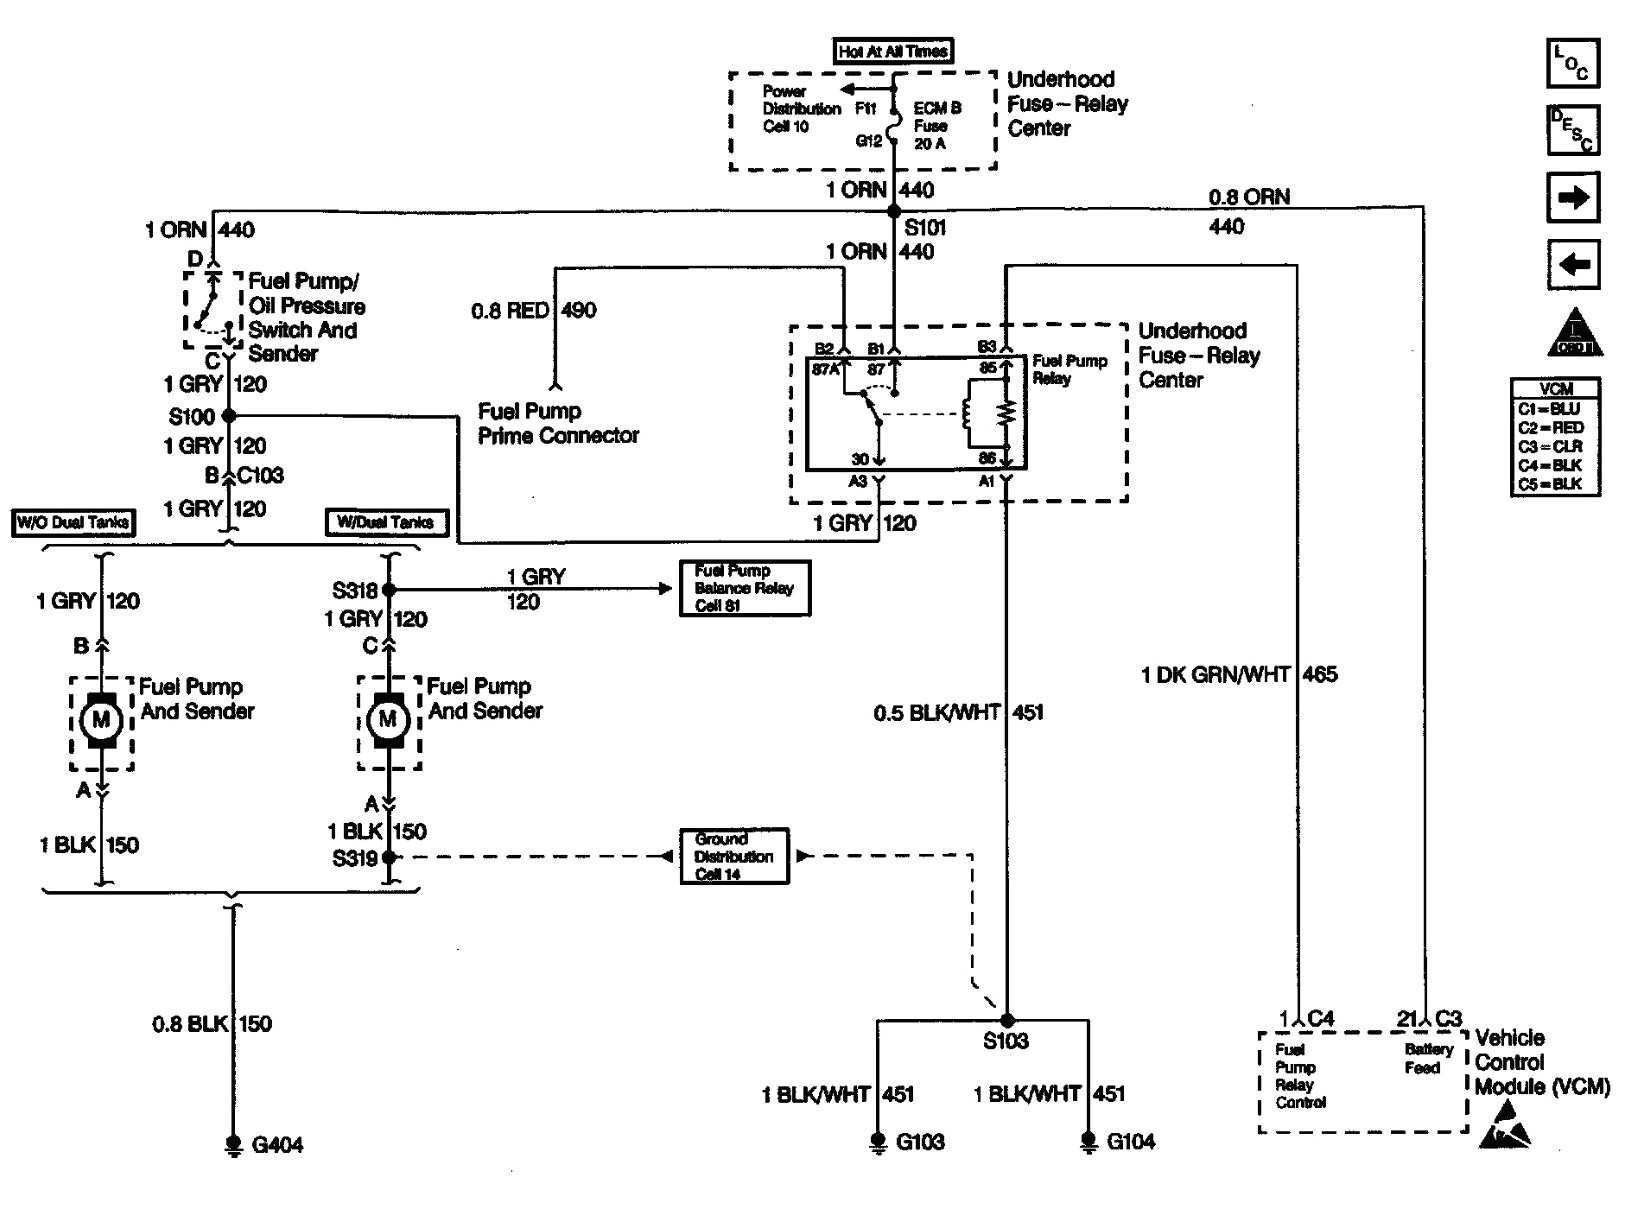 dodge ram 1500 fuel system diagram 98 dodge fuel pump wiring wiring diagrams dat  98 dodge fuel pump wiring wiring